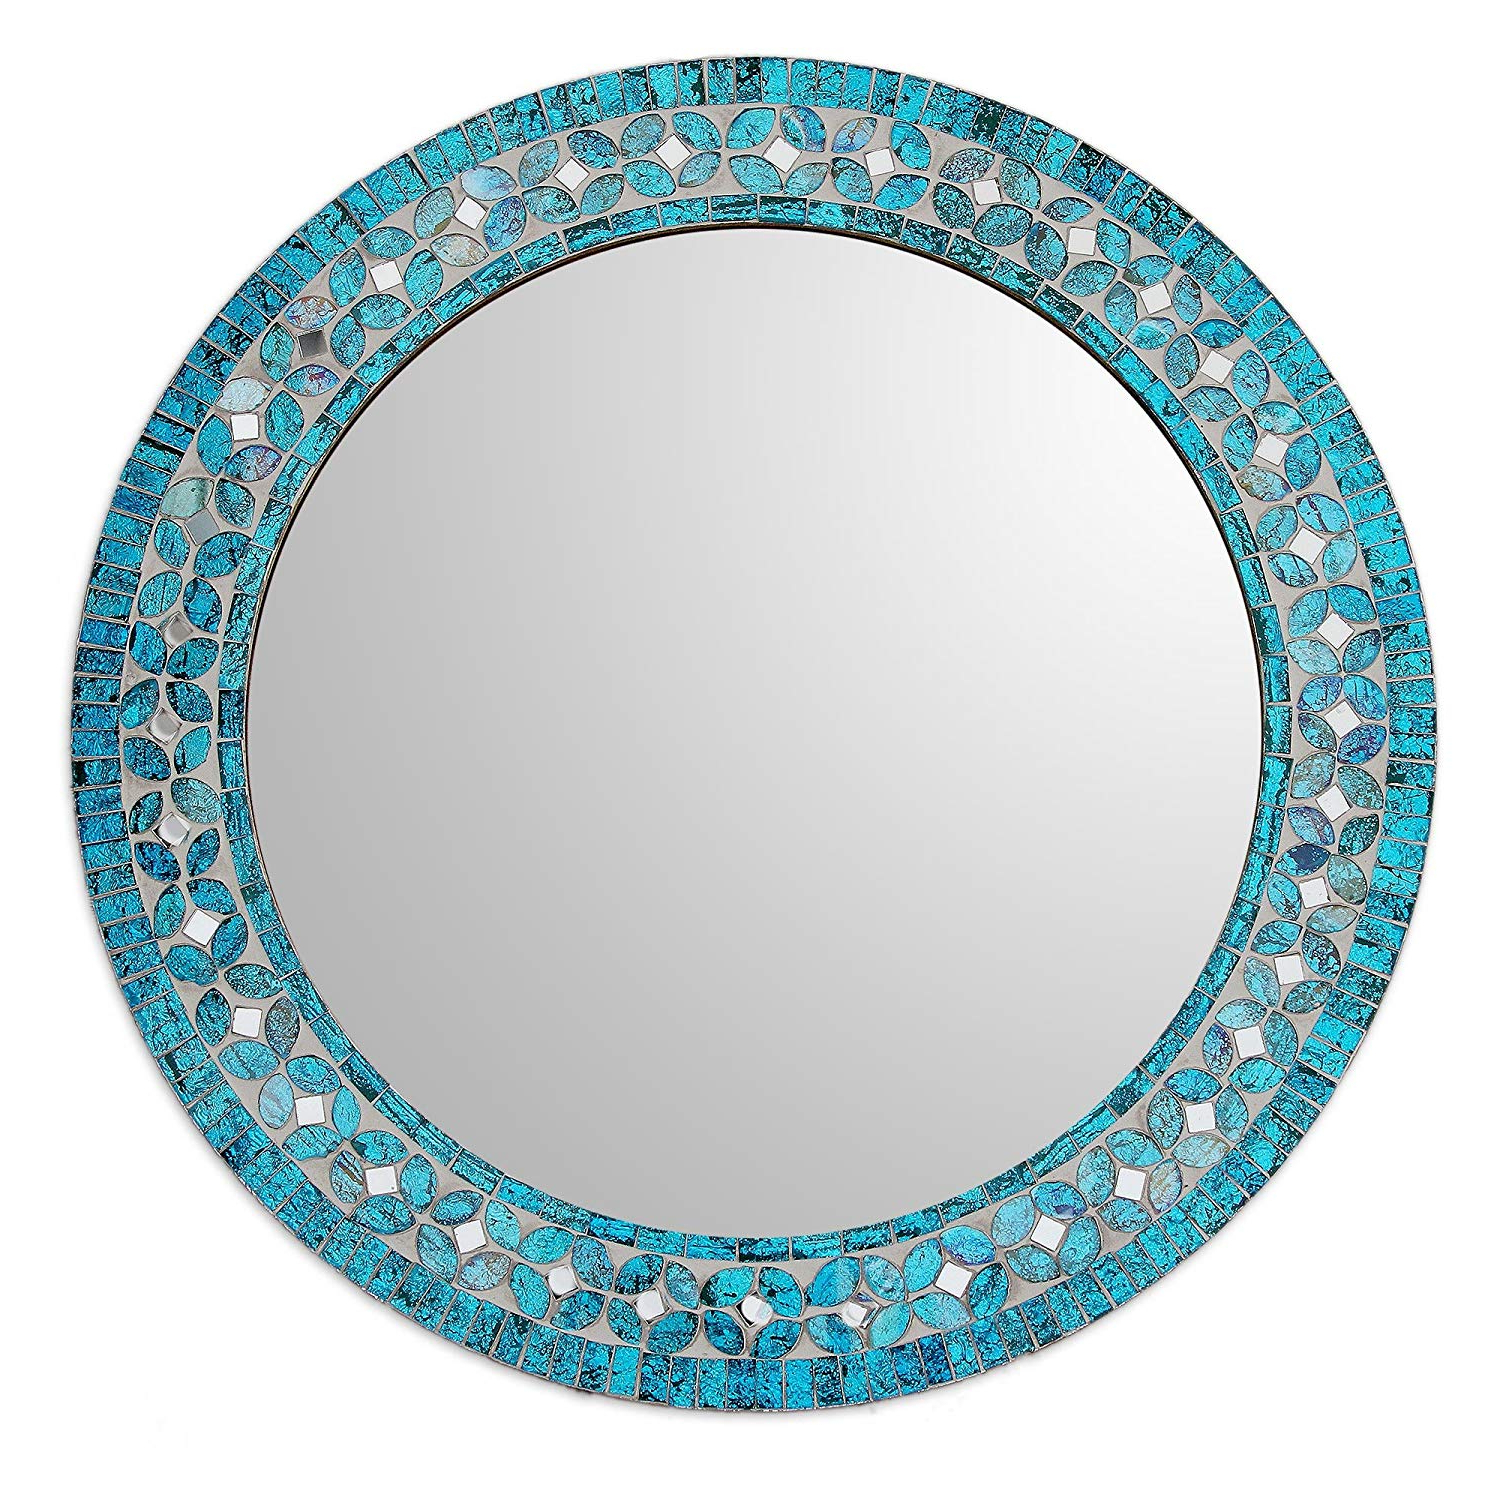 Turquoise Wall Mirrors Within Best And Newest Novica Mi0043 Turquoise Blossom' Glass Mosaic Wall Mirror (View 18 of 20)